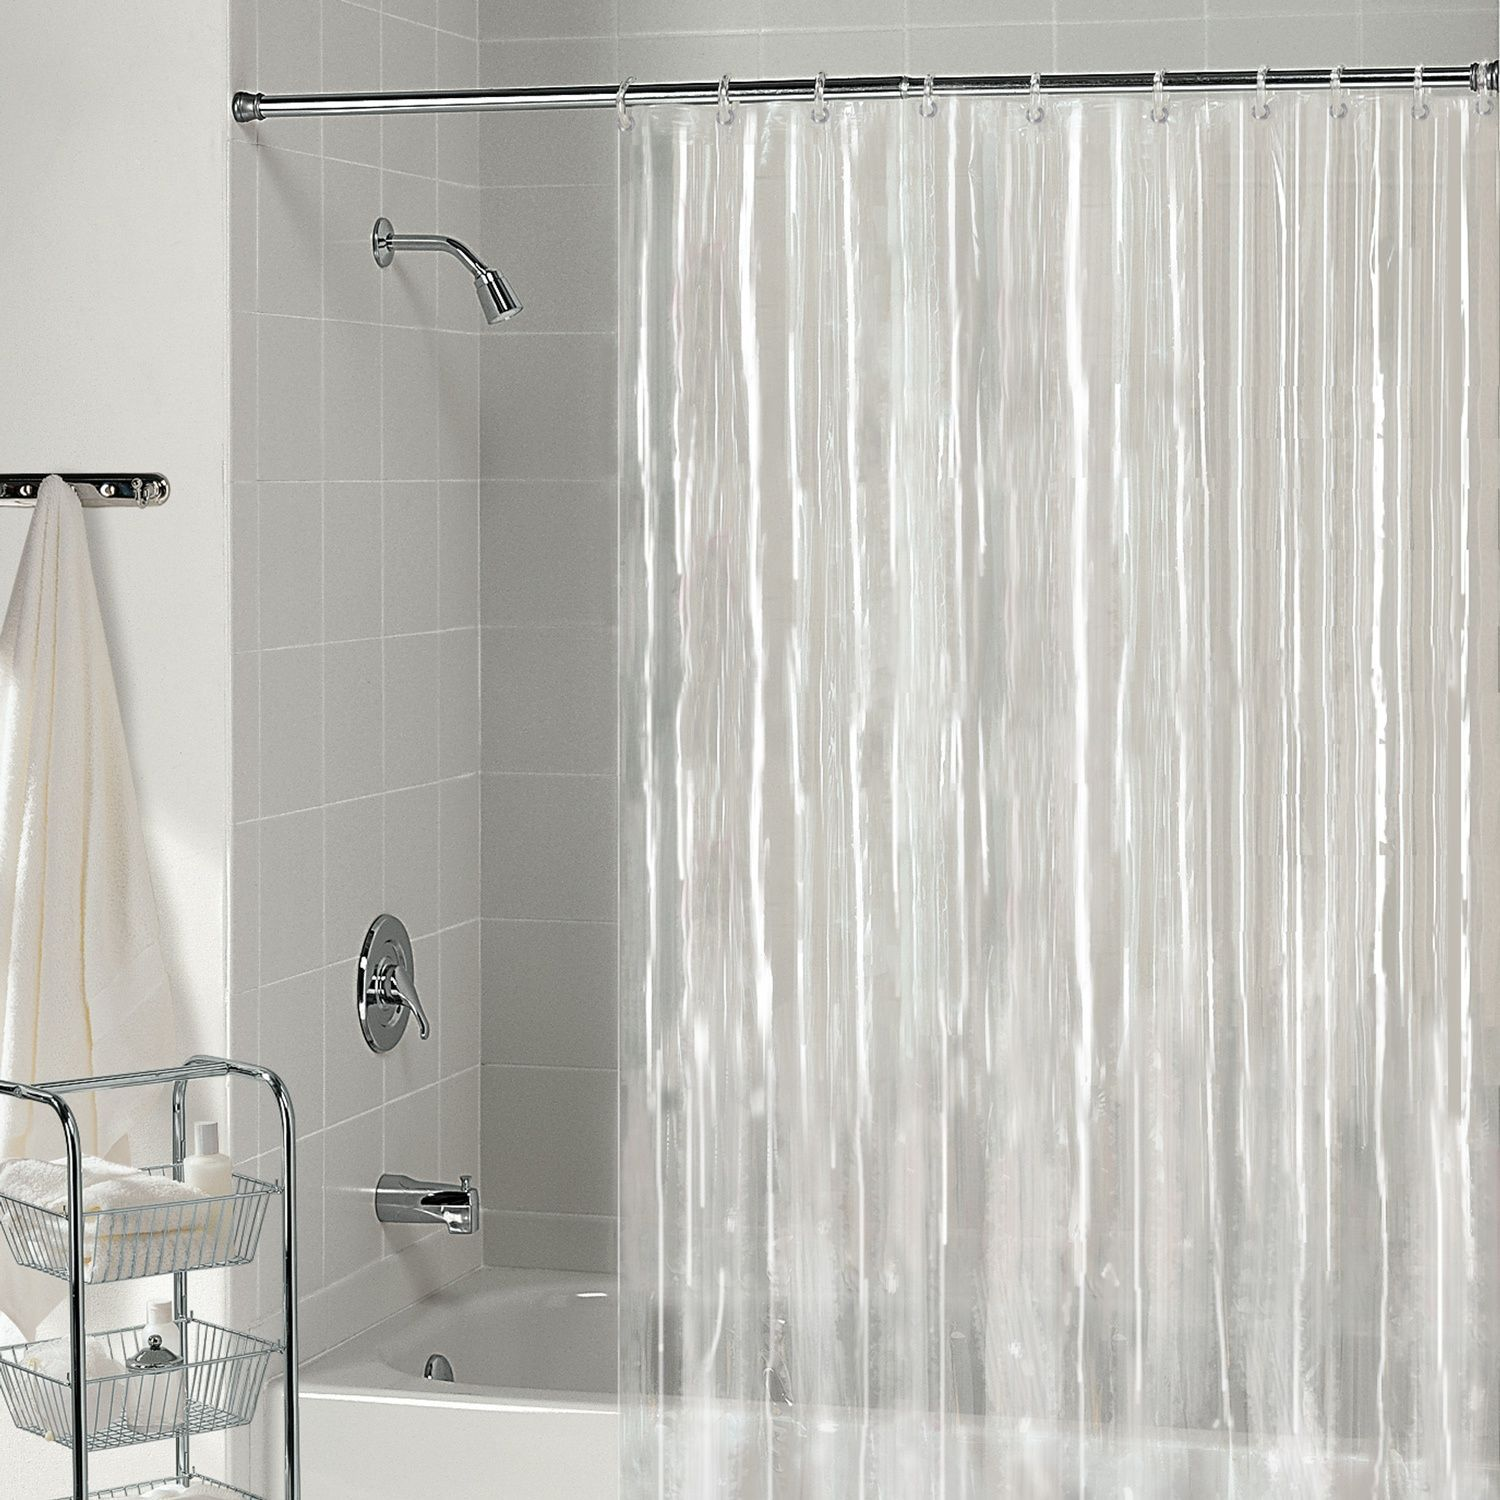 How To Decorate A Clear Shower Curtain Garden Style Clear Curtain